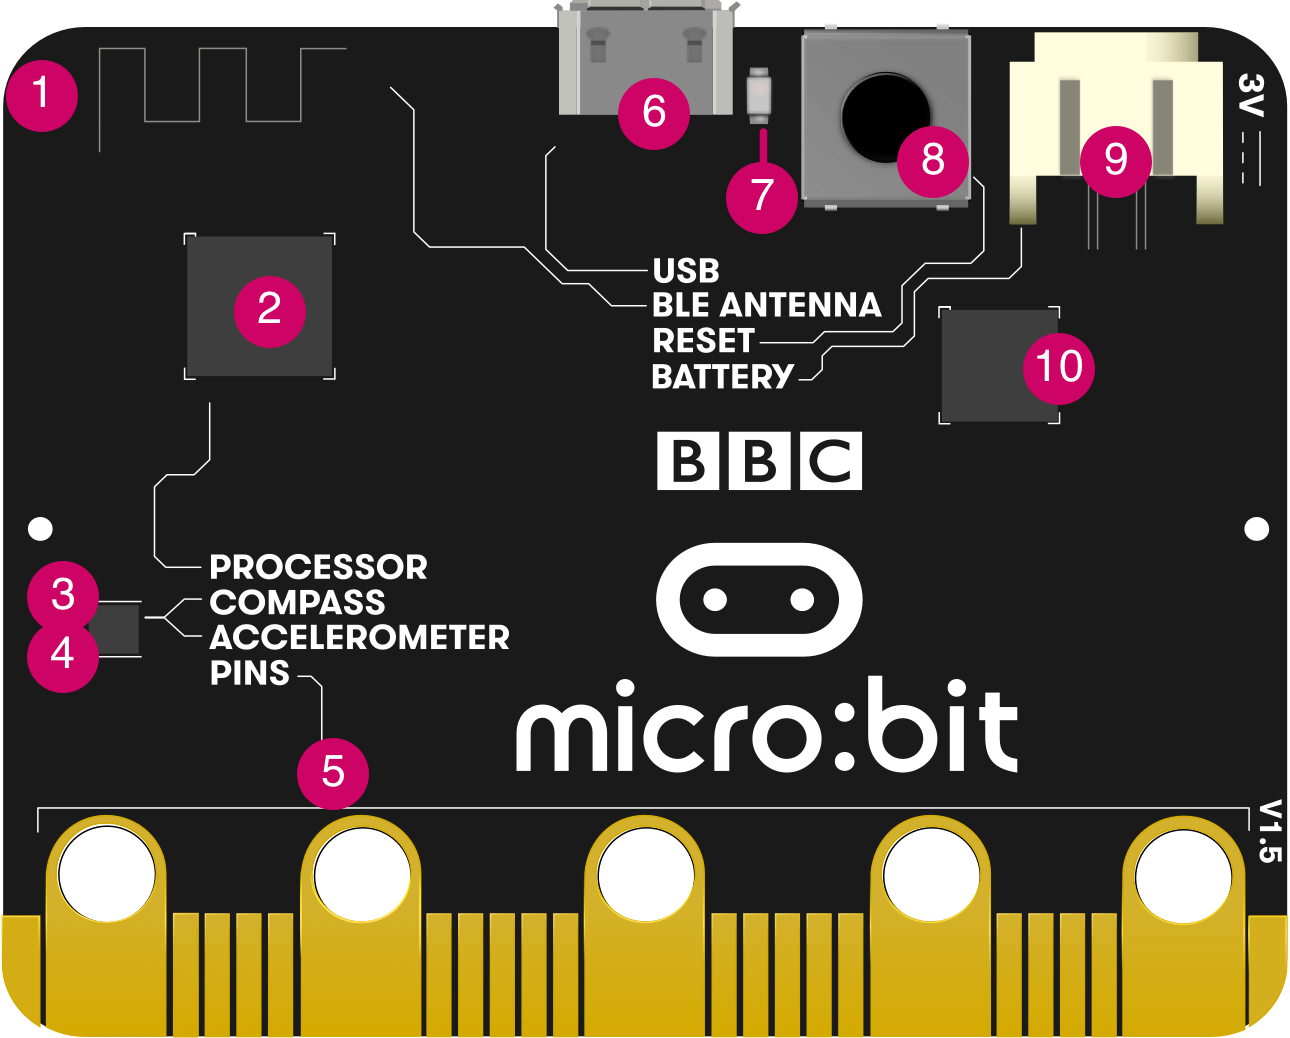 Numbered diagram of features on the back of the original micro:bit